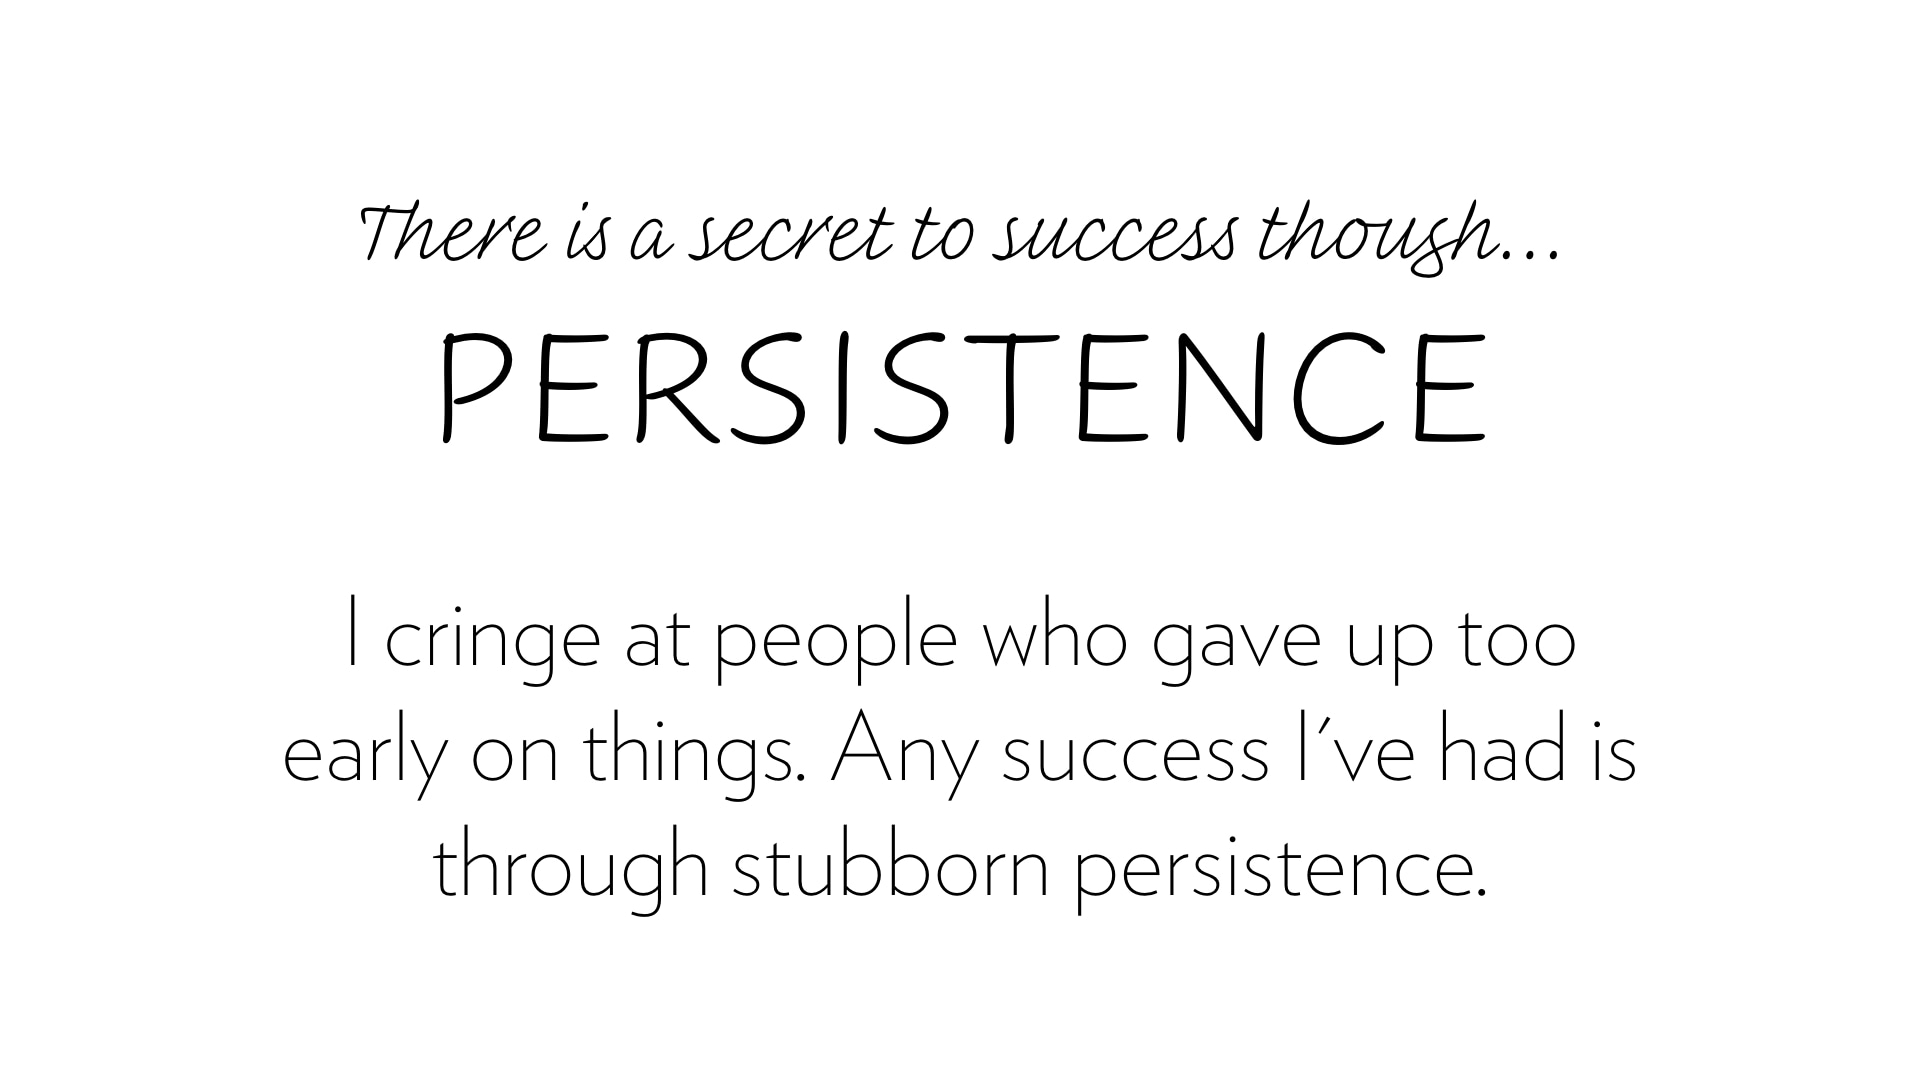 The sercret to success is persistence.